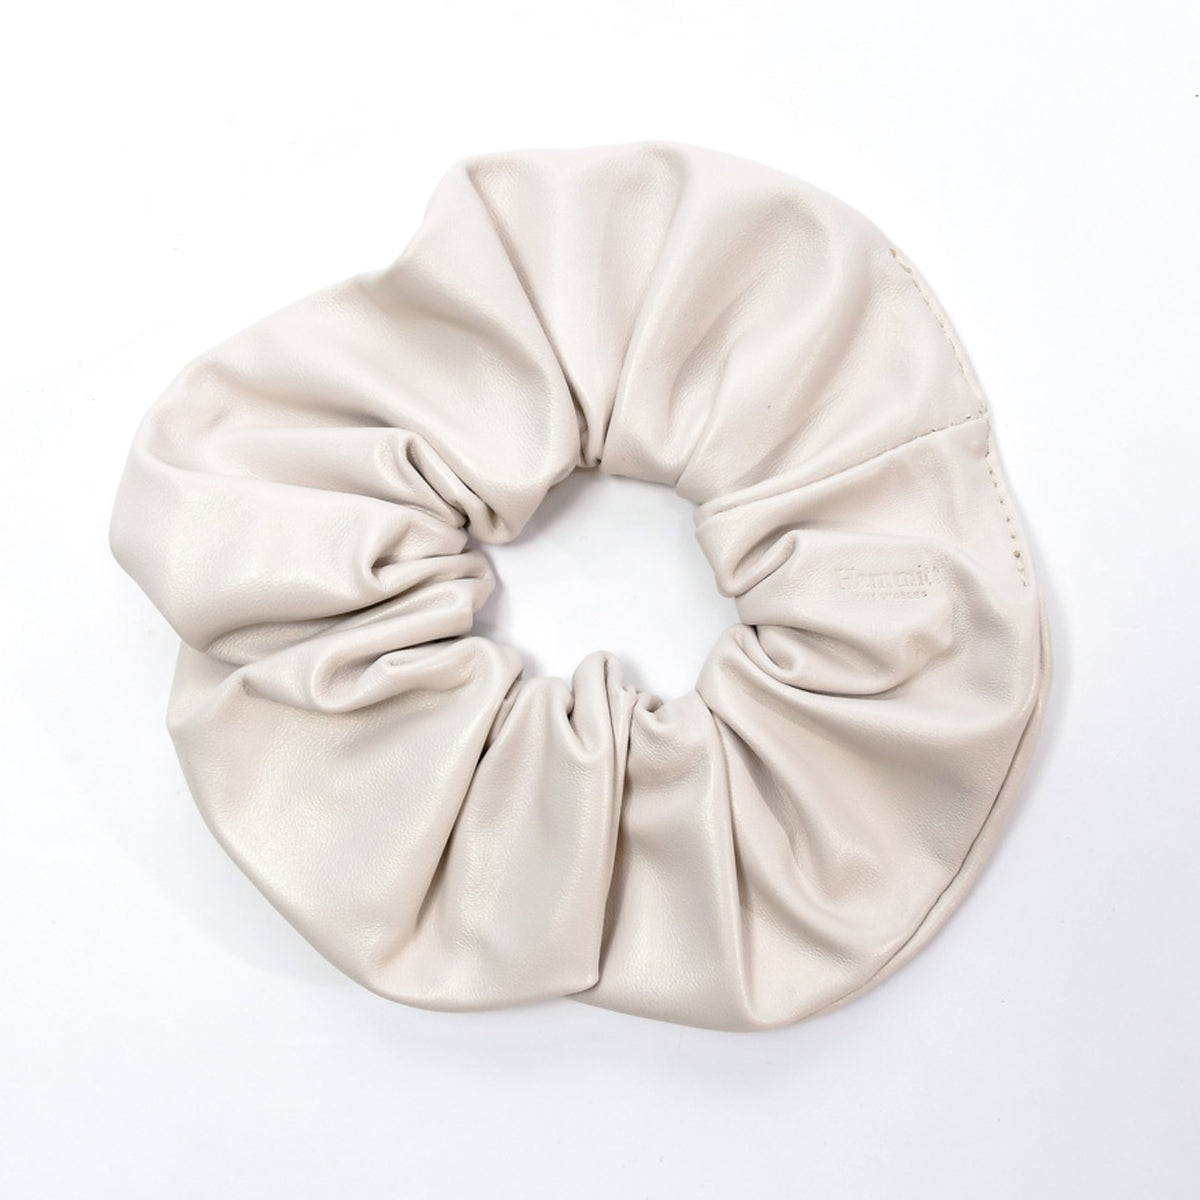 Scrunchie-Lrg-Marshmallow-White-Front-View